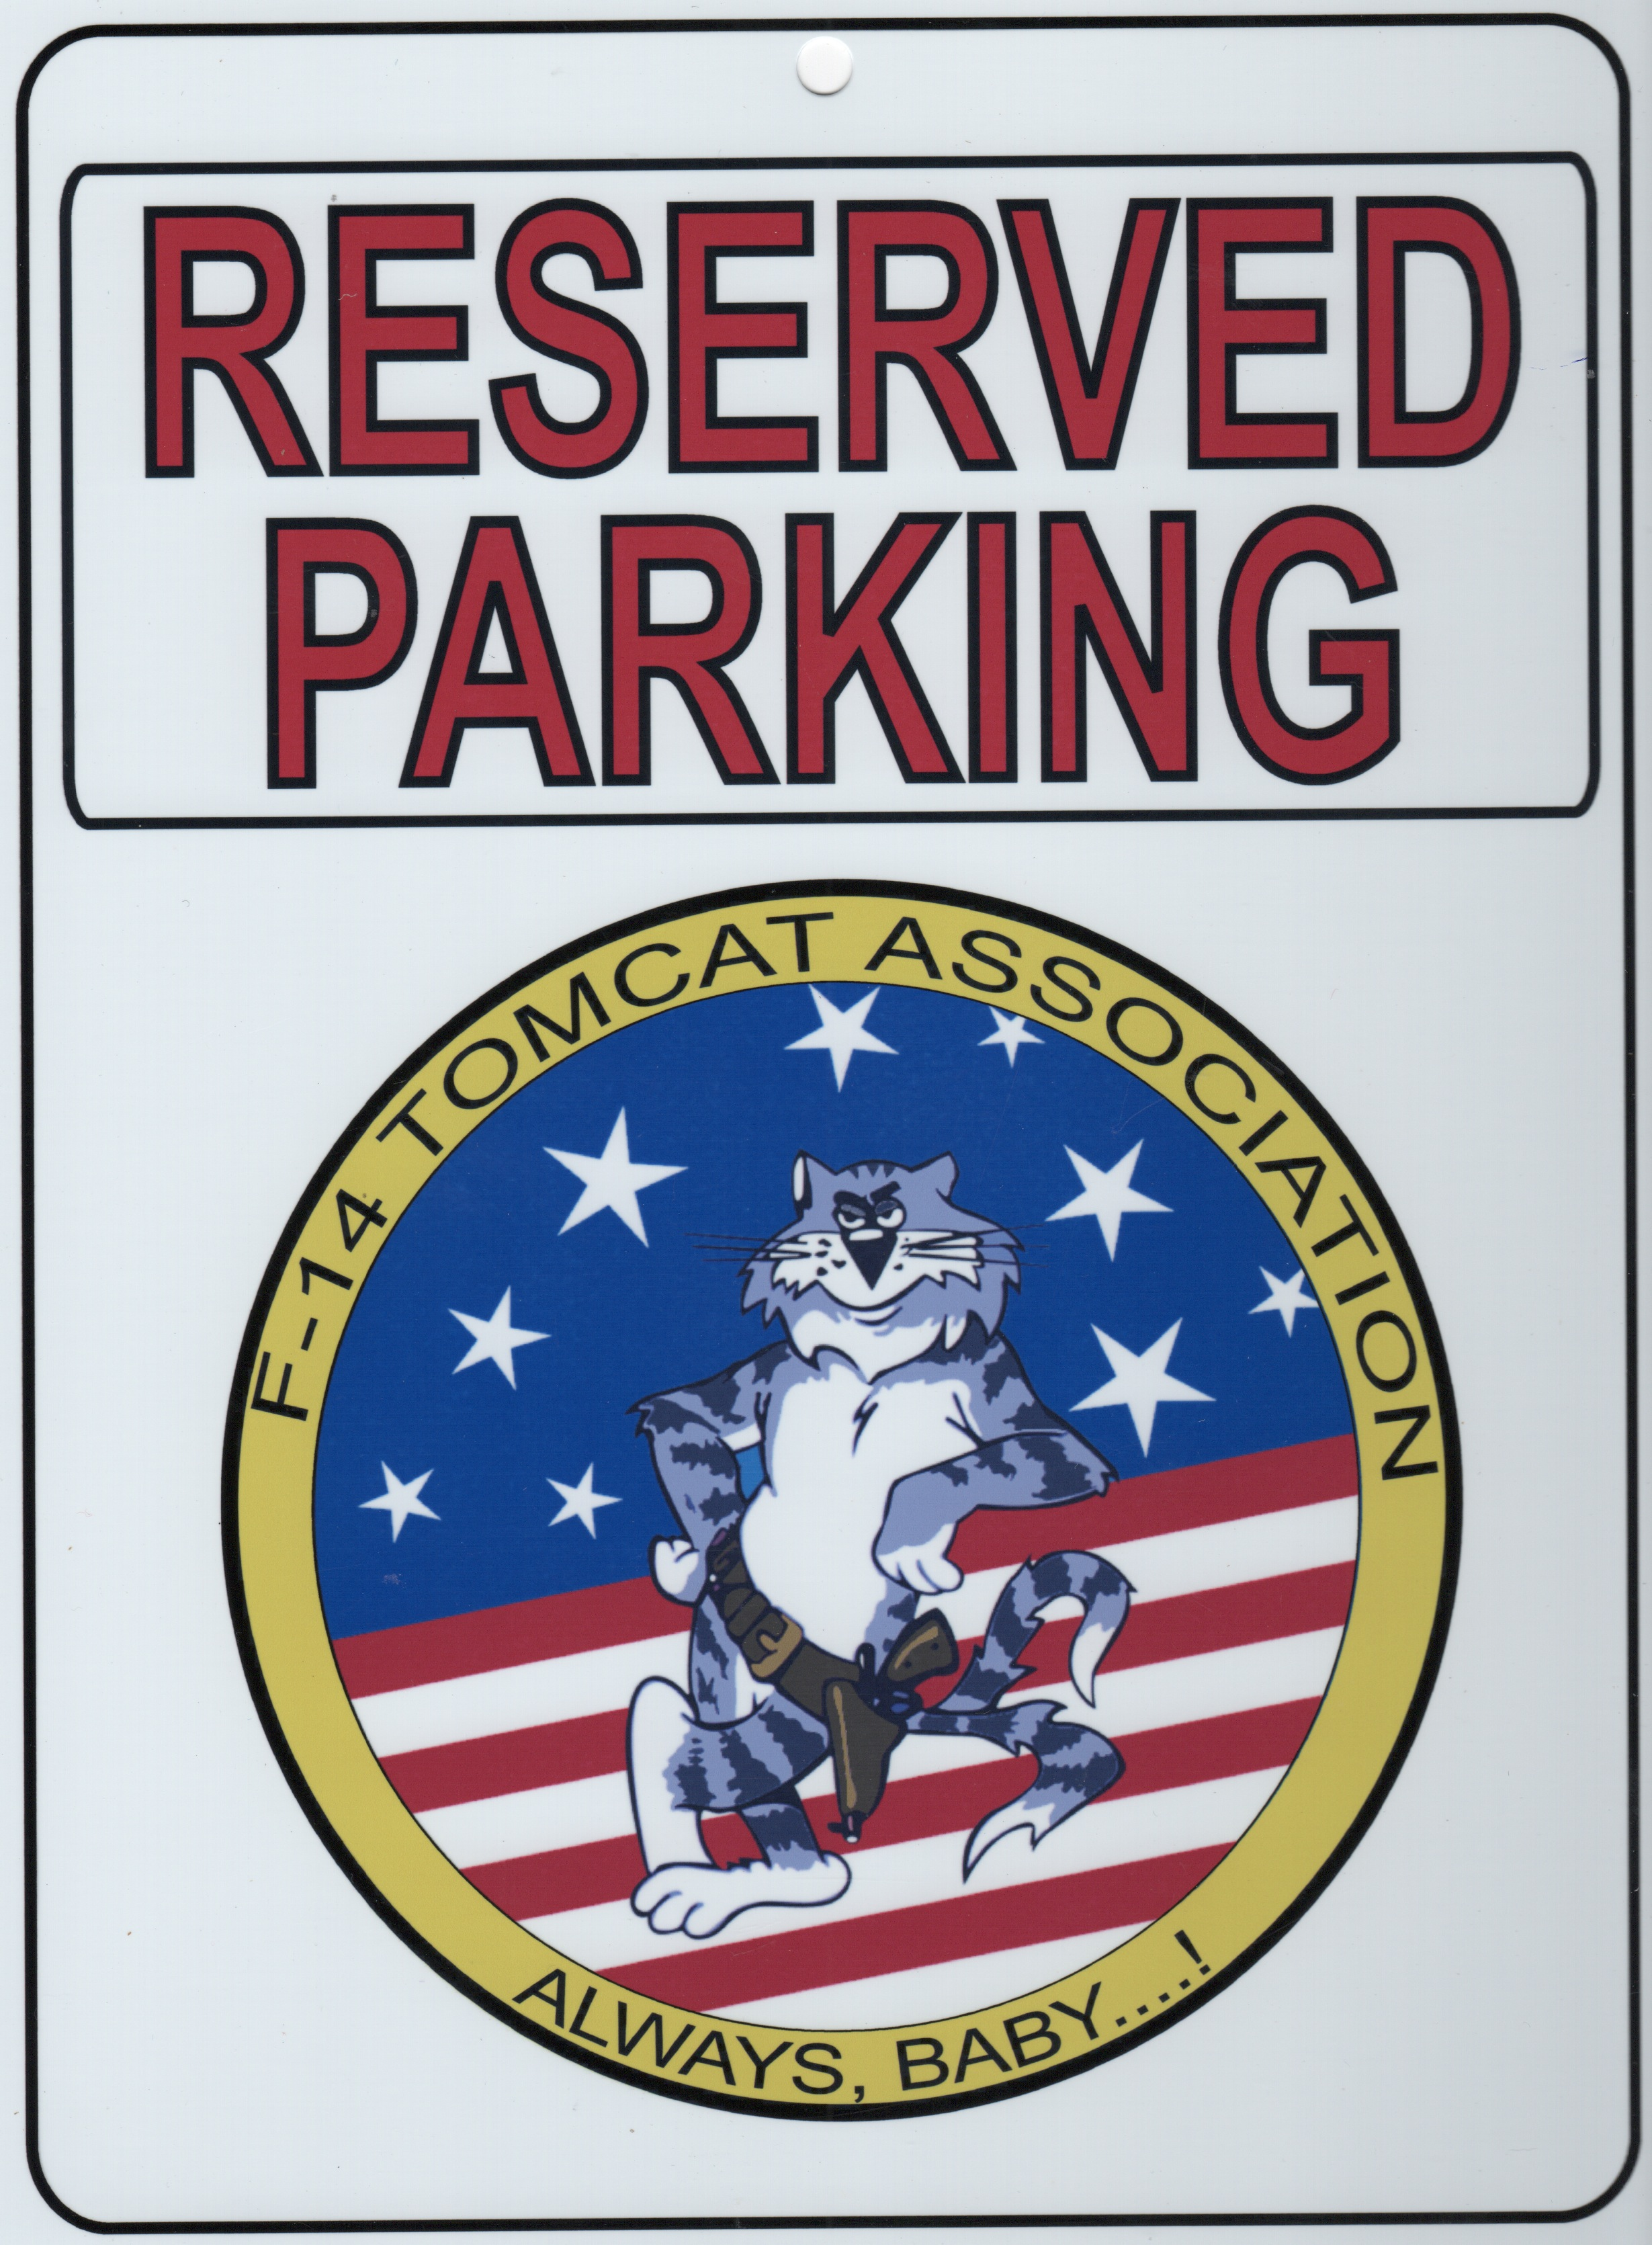 Tomcat Assoc 'Parking Placard'